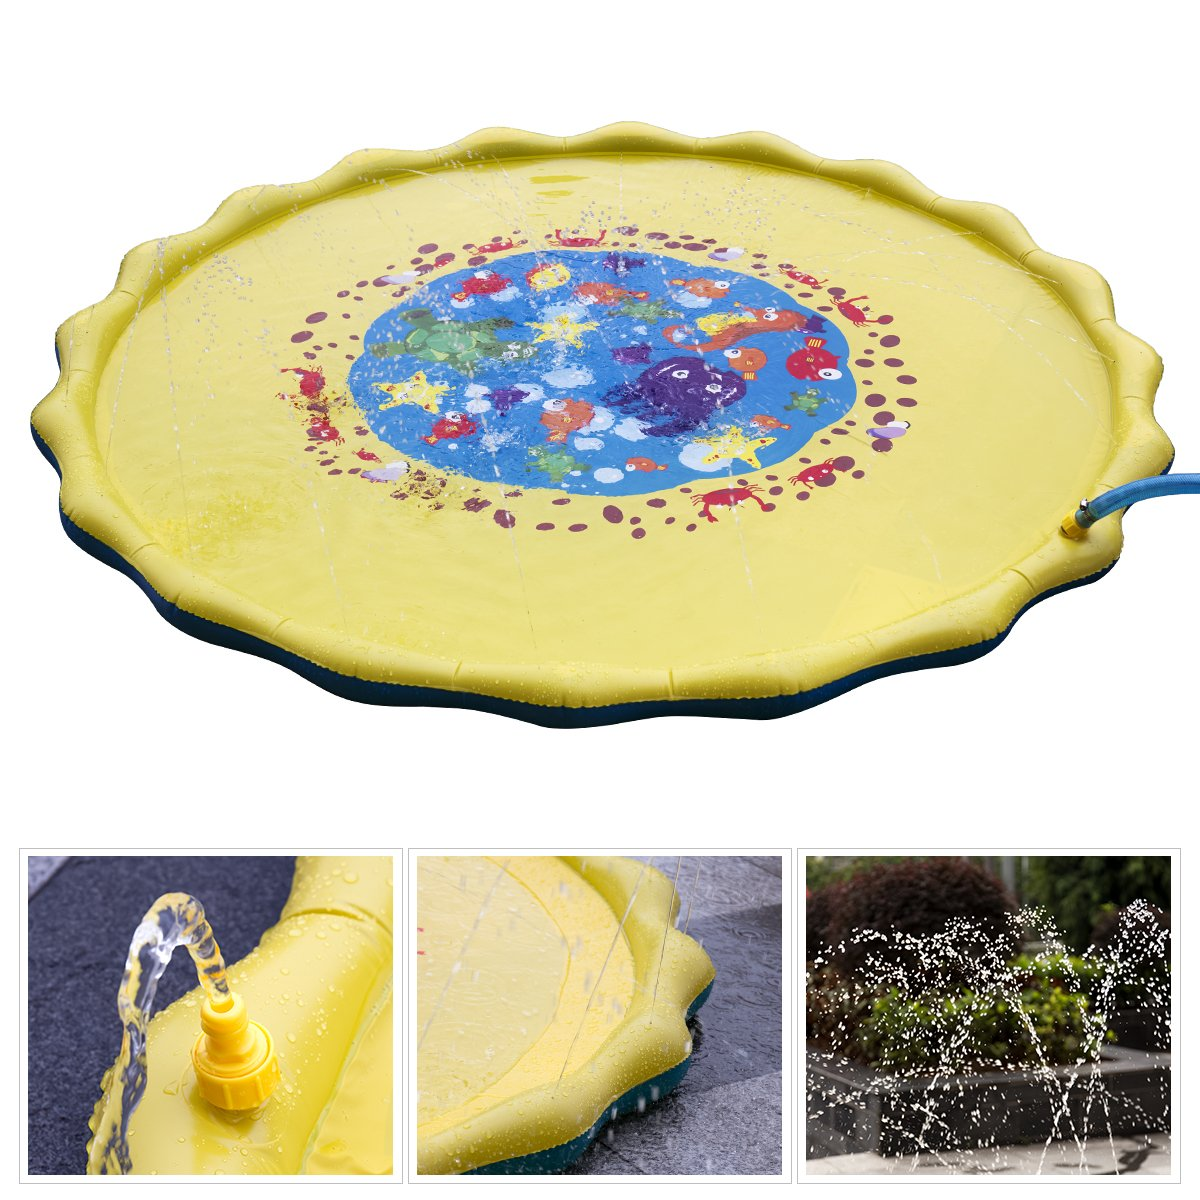 Splash Play Mat, 68in-Diameter Perfect Inflatable Outdoor Sprinkler Pad Summer Fun Backyard Play for Infants Toddlers and Kids by DAPRIL (Image #5)